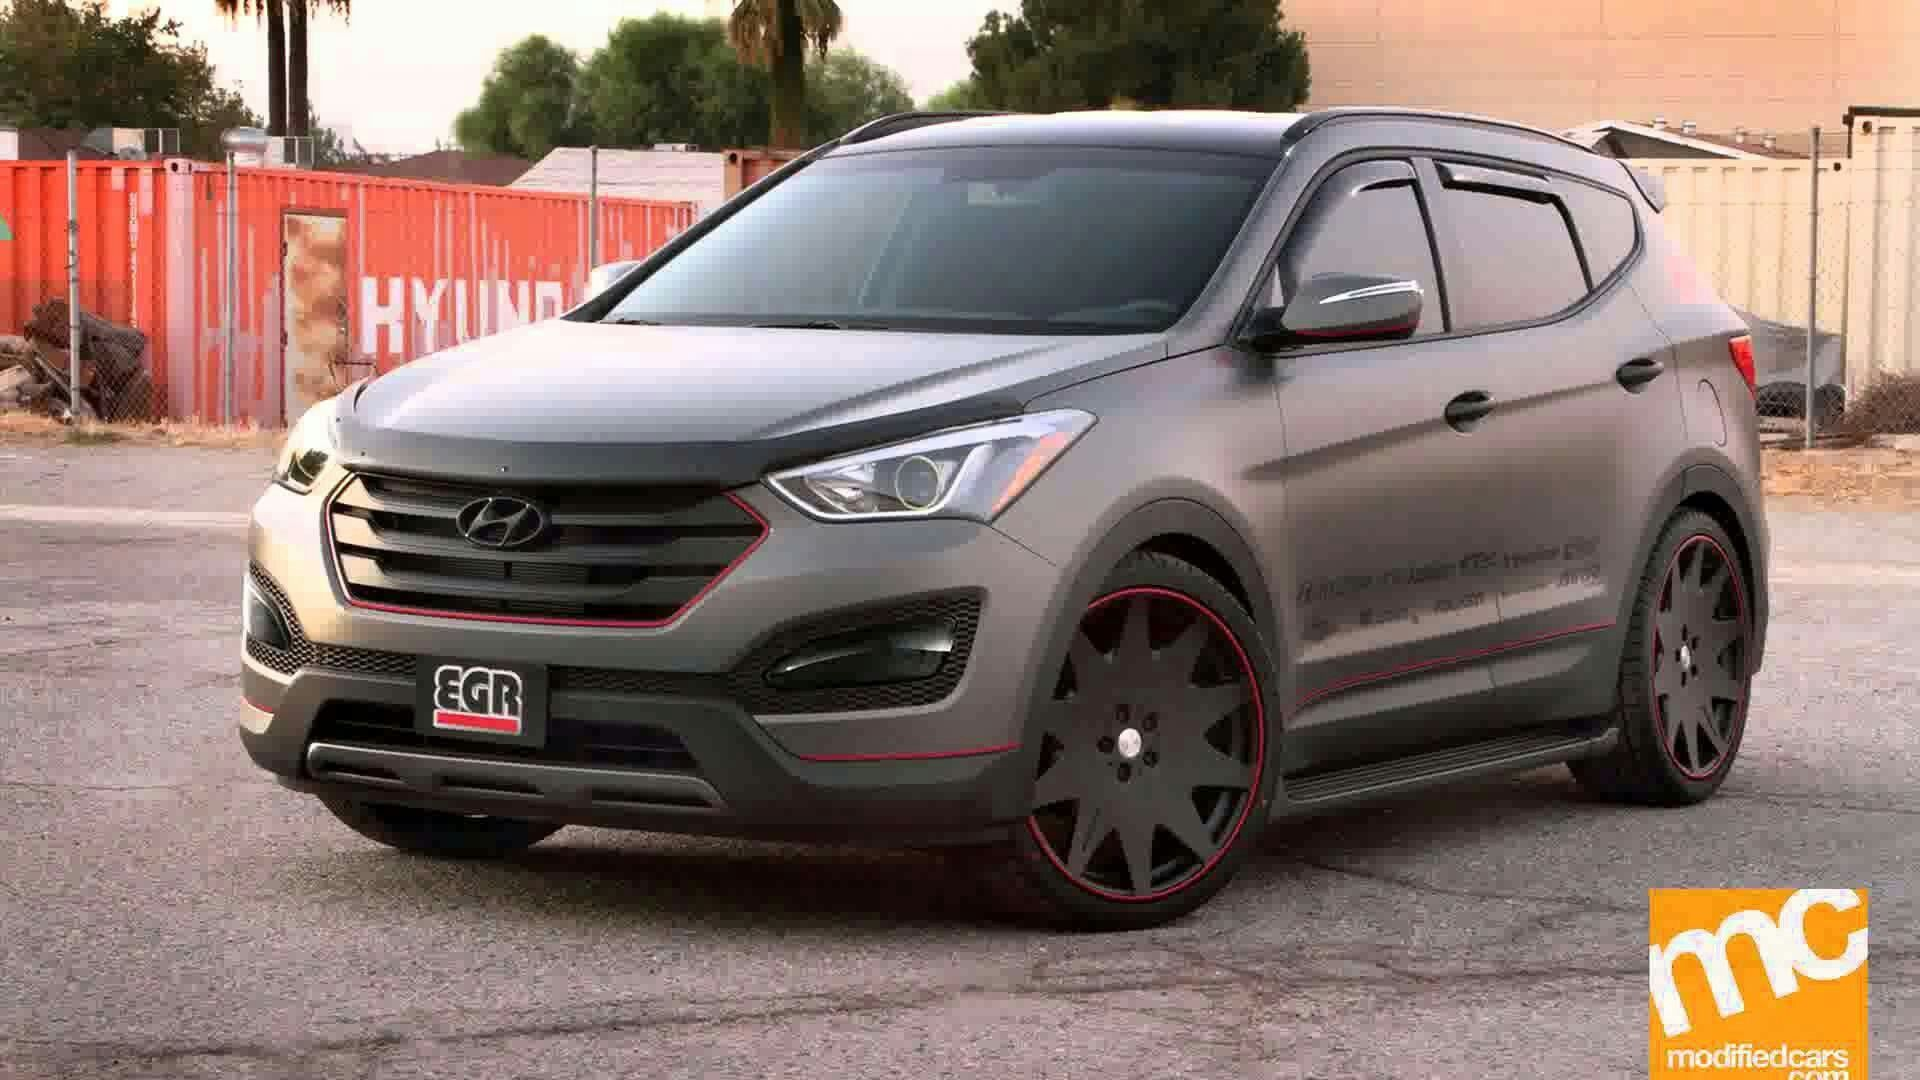 Pin by Krystal Camp on Santa Fe ️ Hyundai santa fe sport